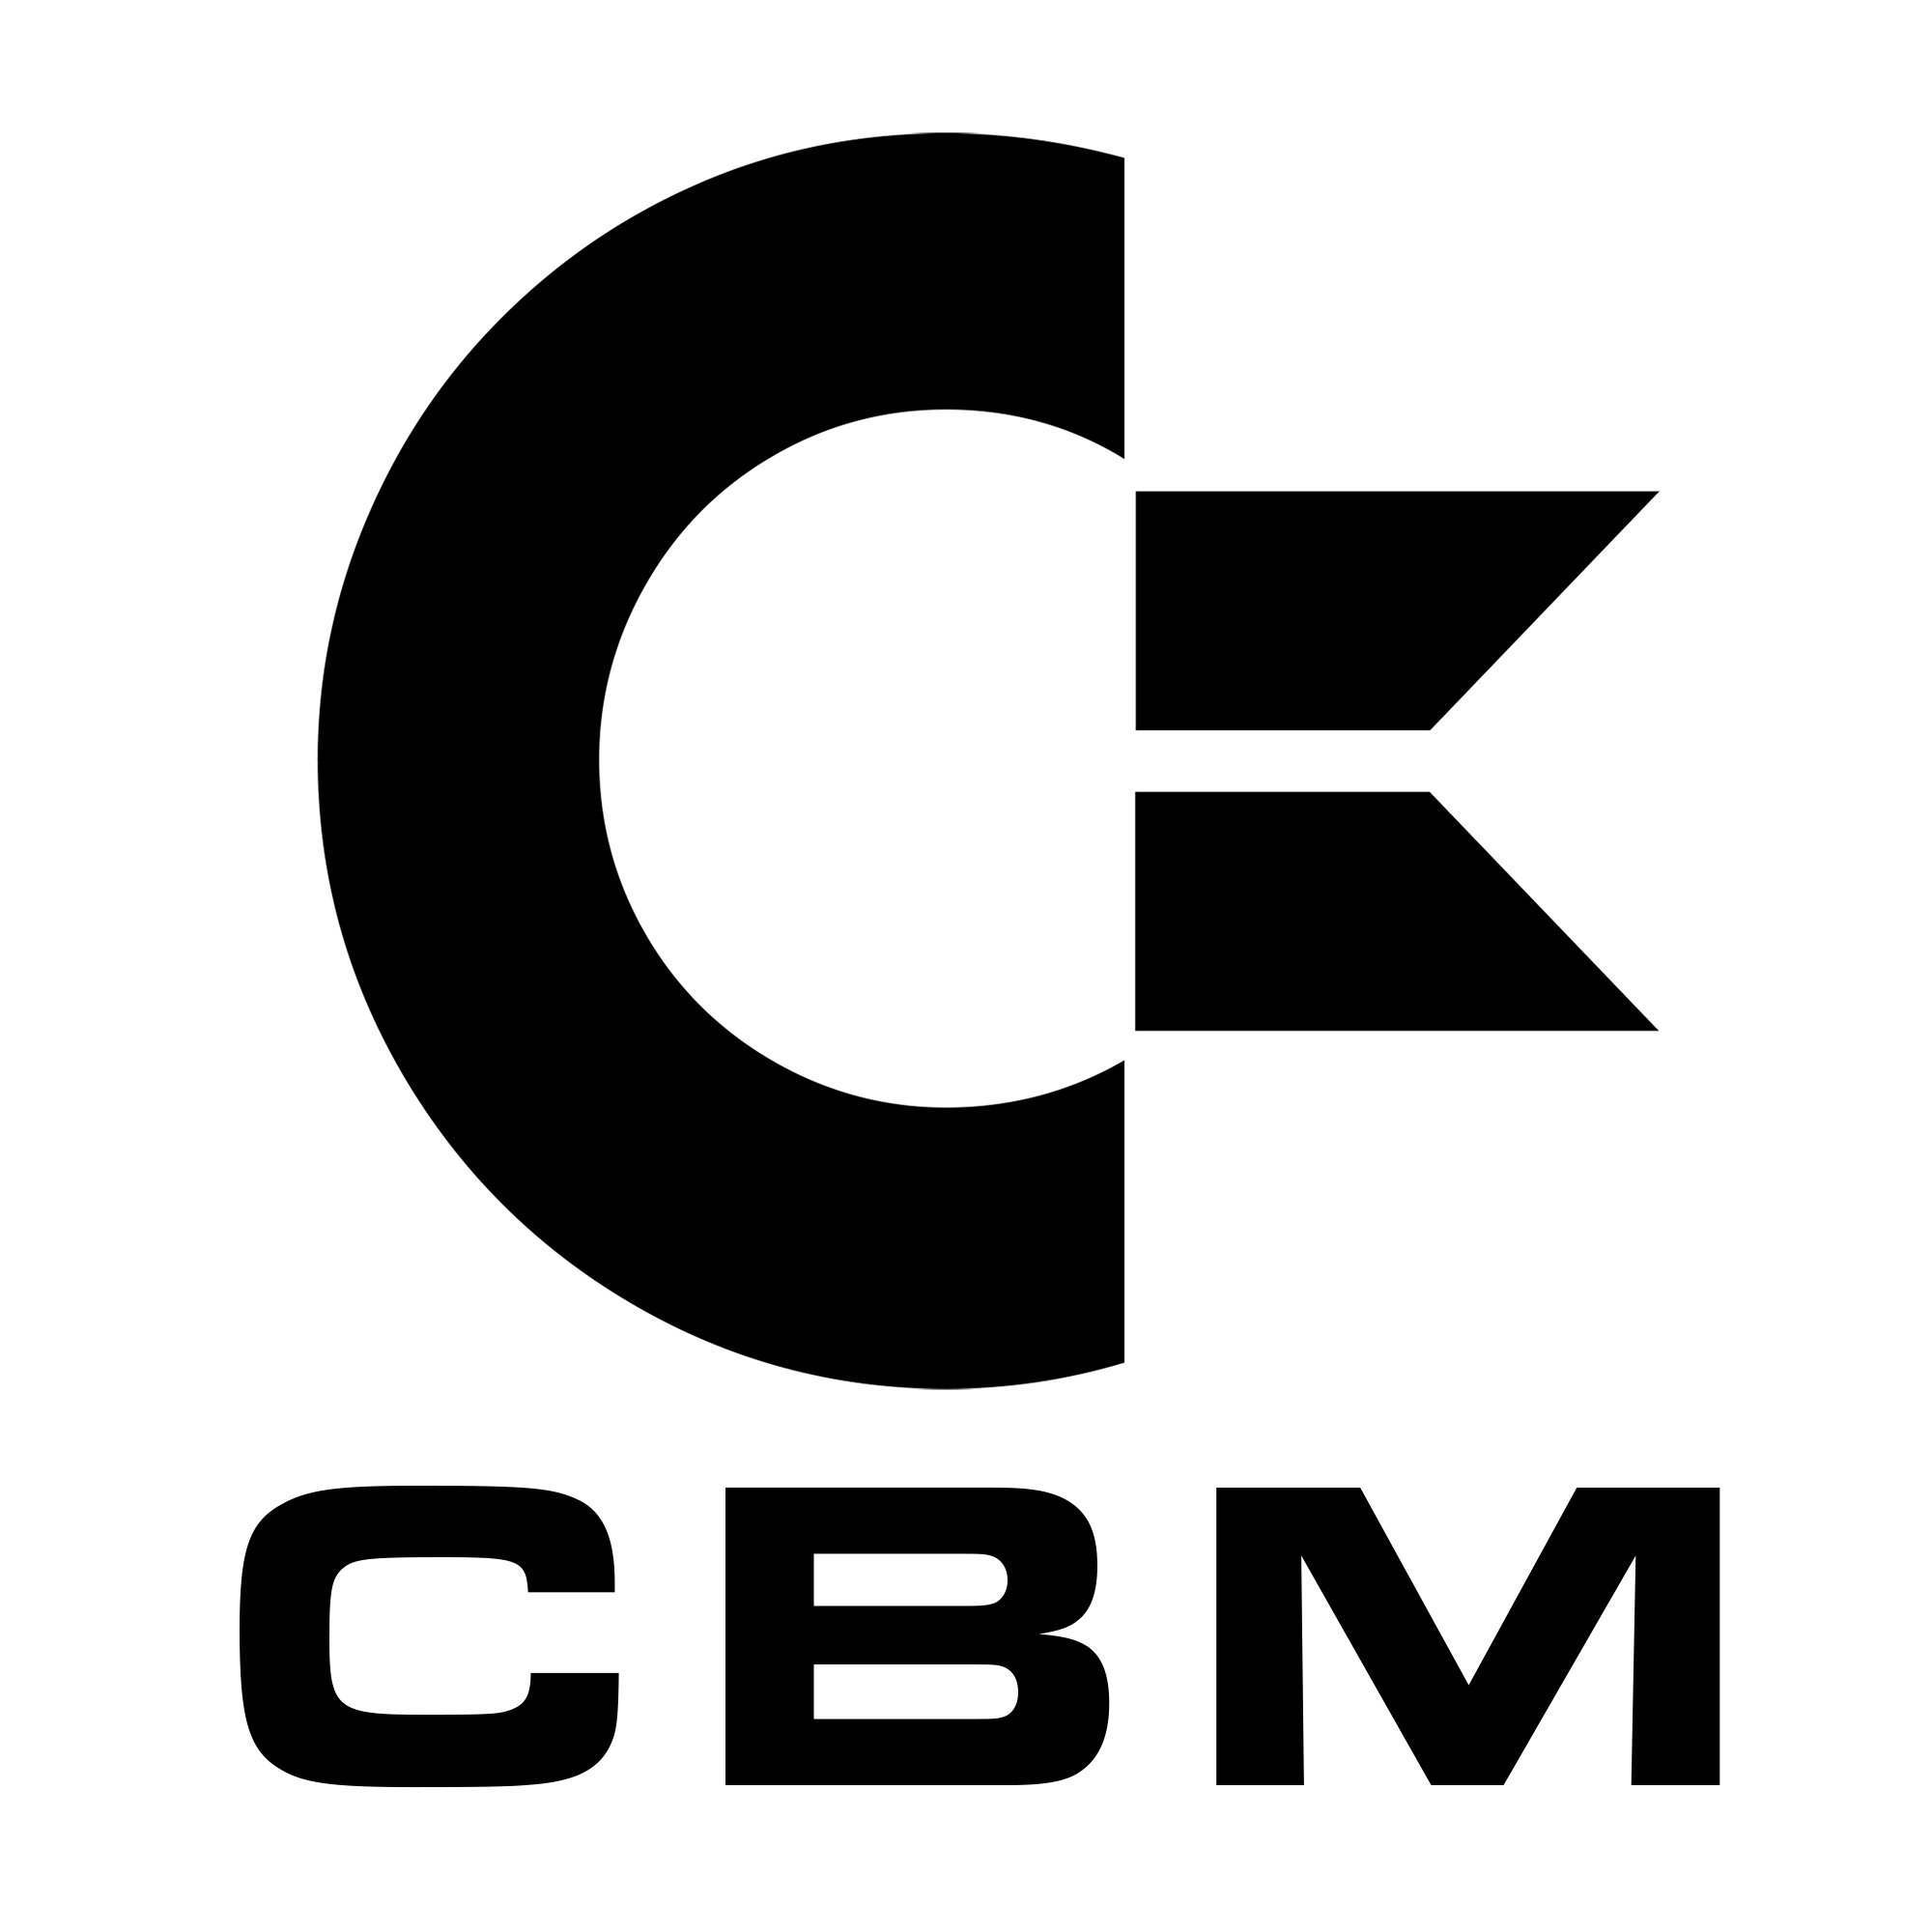 CMB Trademark Application